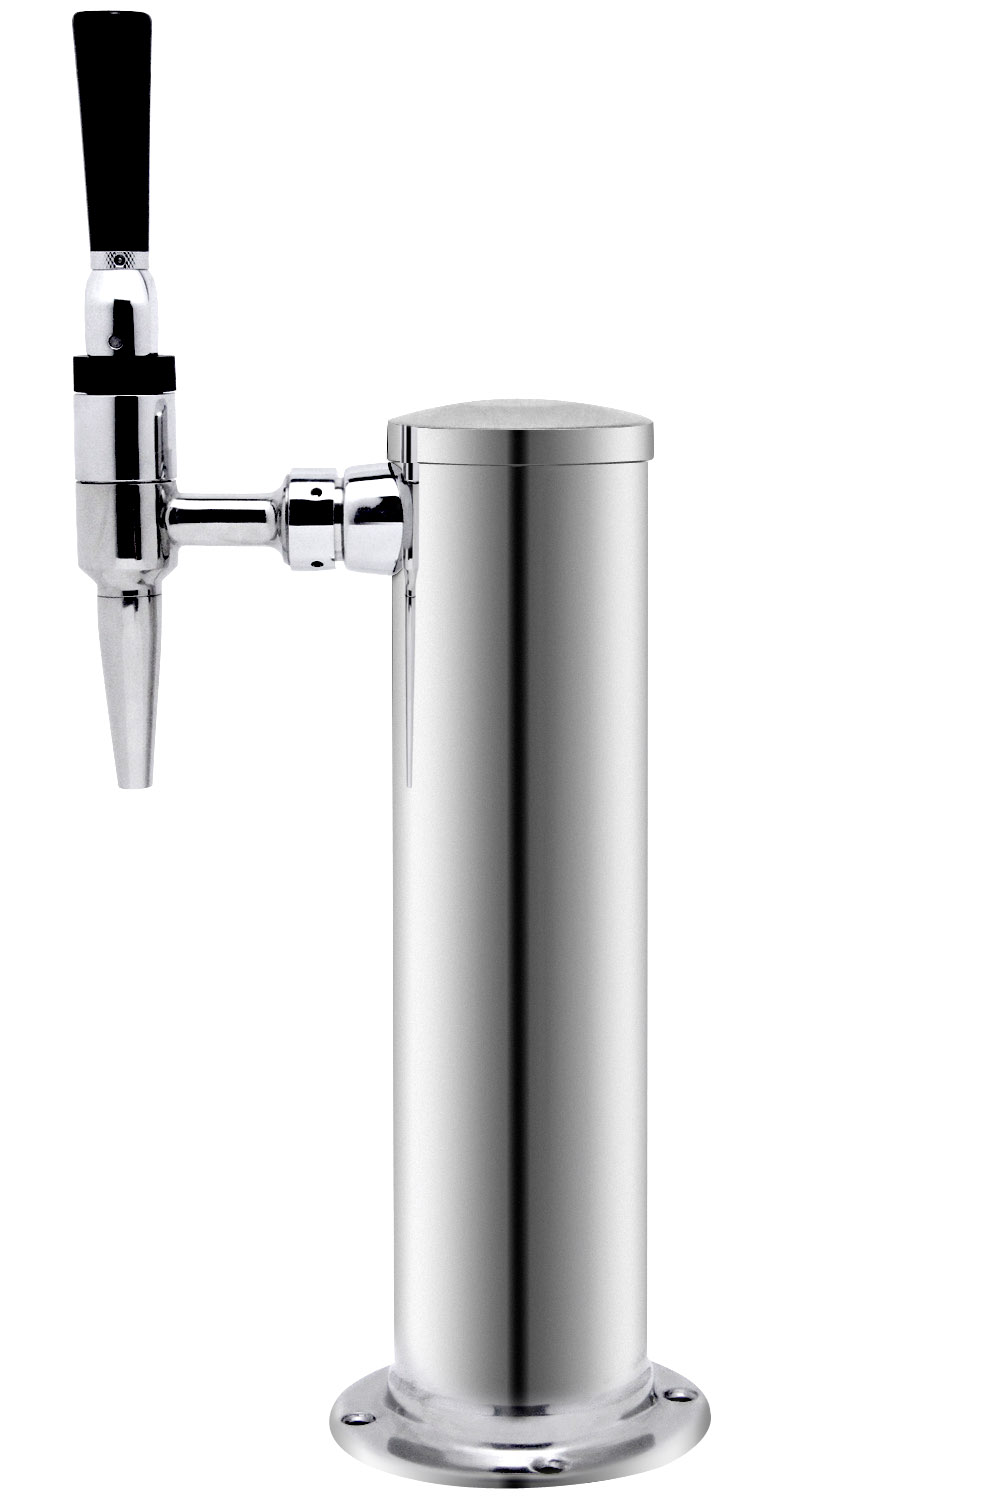 Kegco 1FT-GSF Single Faucet Polished Stainless Steel Draft BeerTower ...